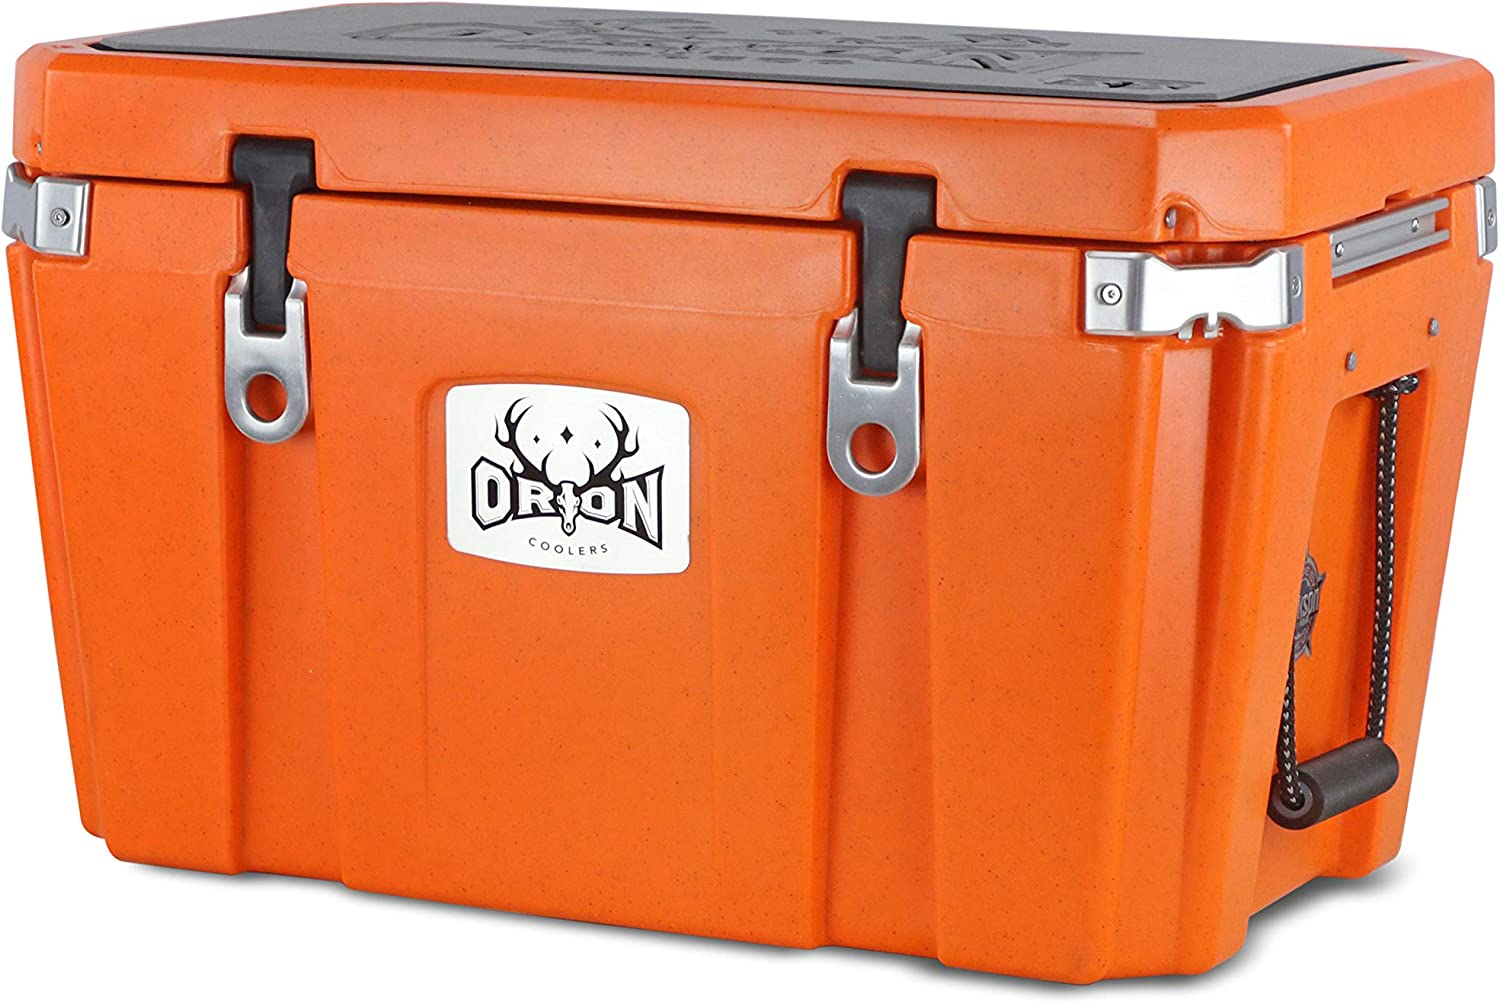 Orion Heavy Duty Premium Cooler (55 Quart, Ember), Durable Insulated Outdoor Ice Chest for Maximum Cold Retention - Portable, Bear Resistant, and Long Lasting, Great for Hunting, Fishing, Camping